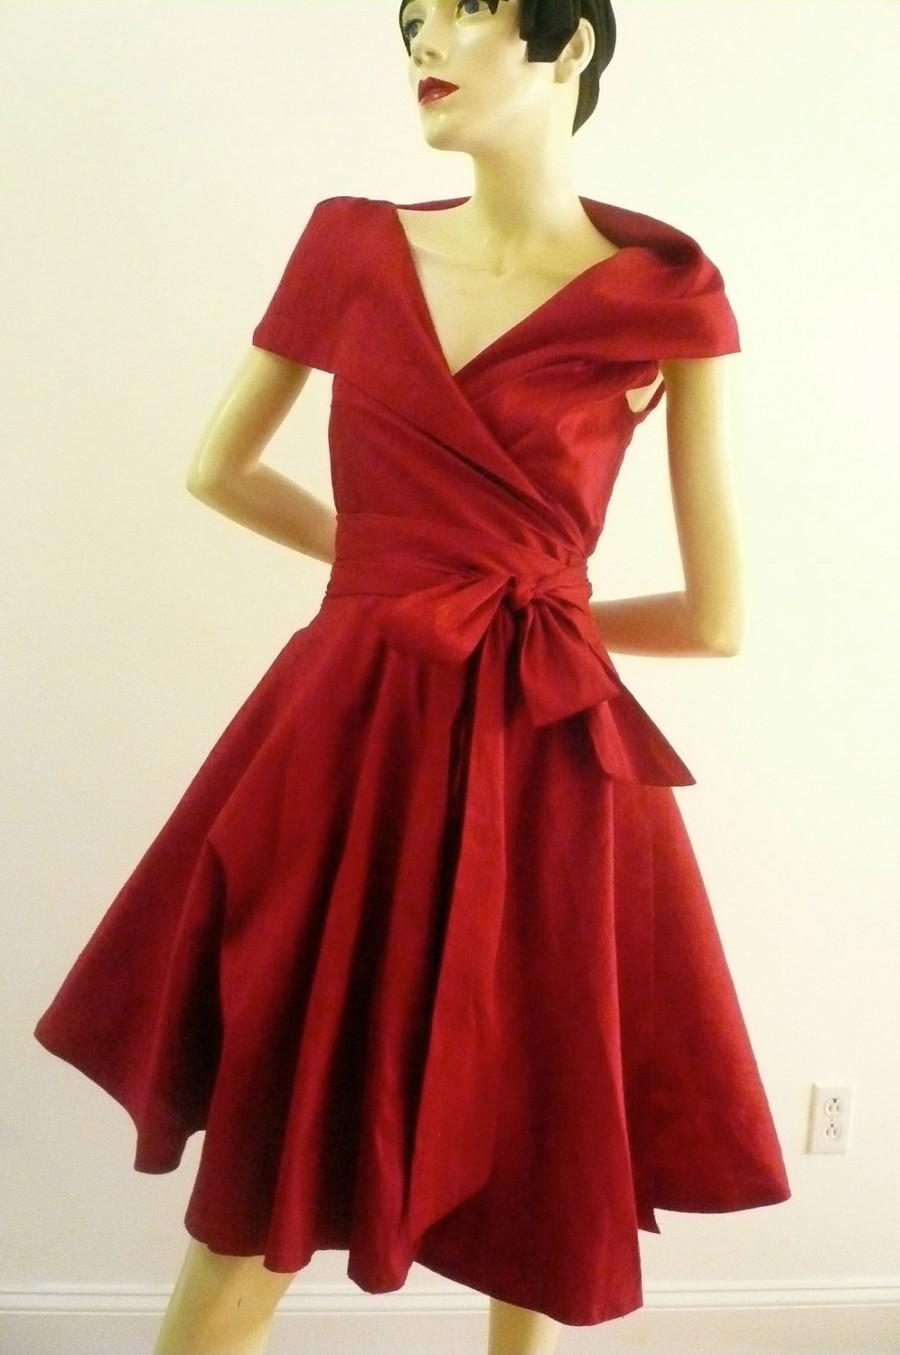 Custom Made MARIA SEVERYNA Double Wrap Full Skirt Dress 1950s Style ...